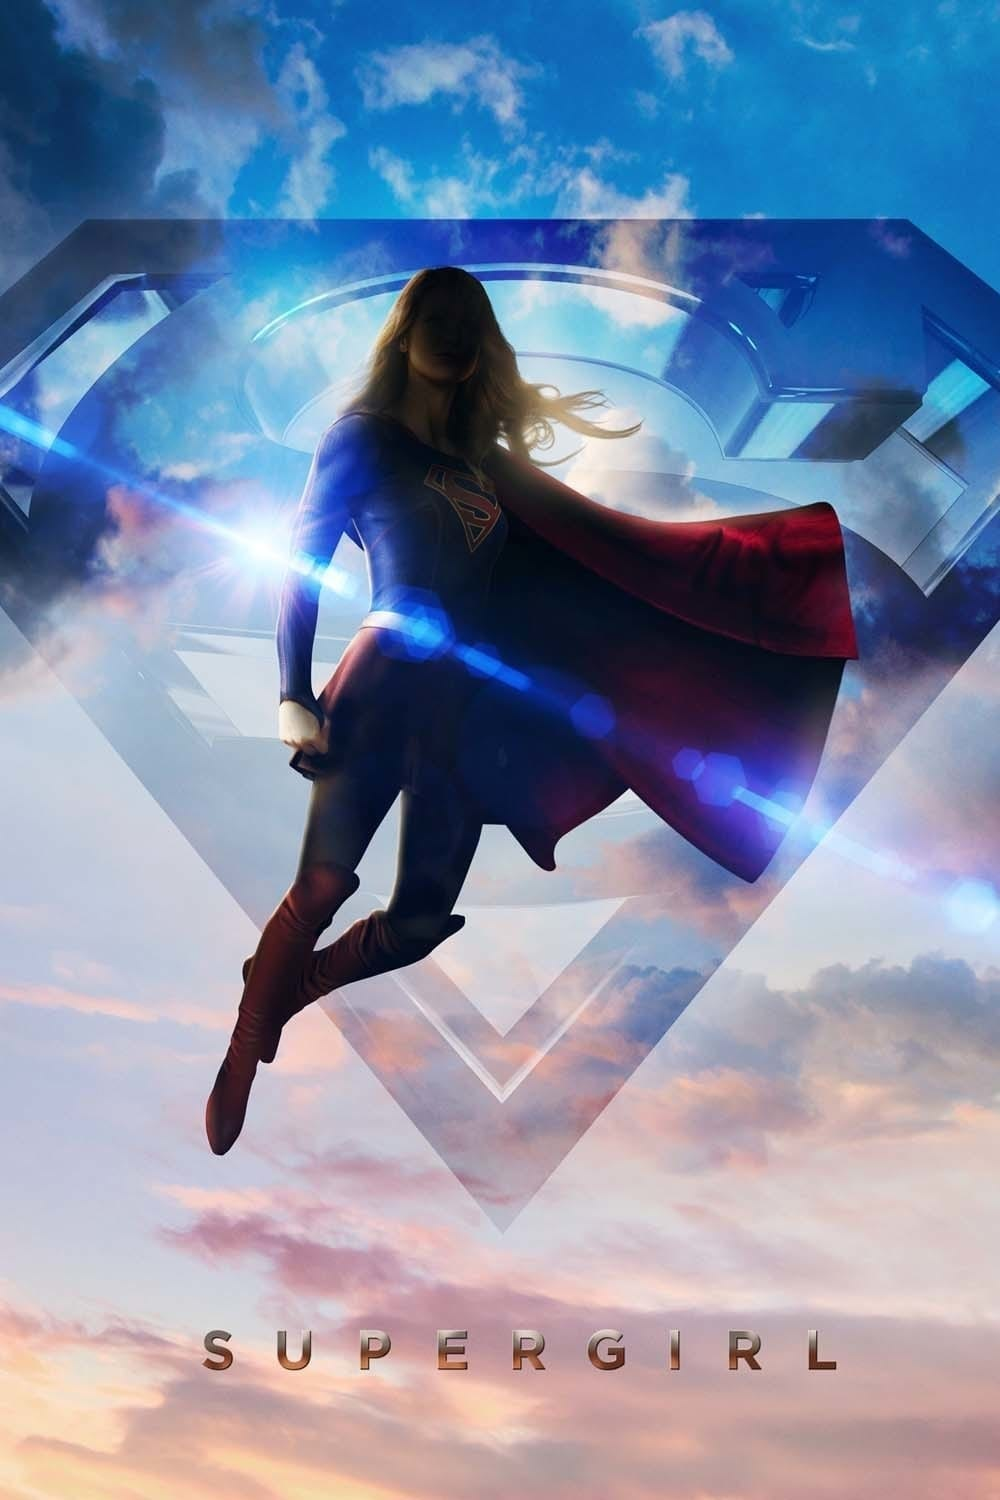 Supergirl S01-S05 BluRay 10Bit 1080p Dts-HD Ma5 1 H265-d3g [260.6 GB] | G-Drive